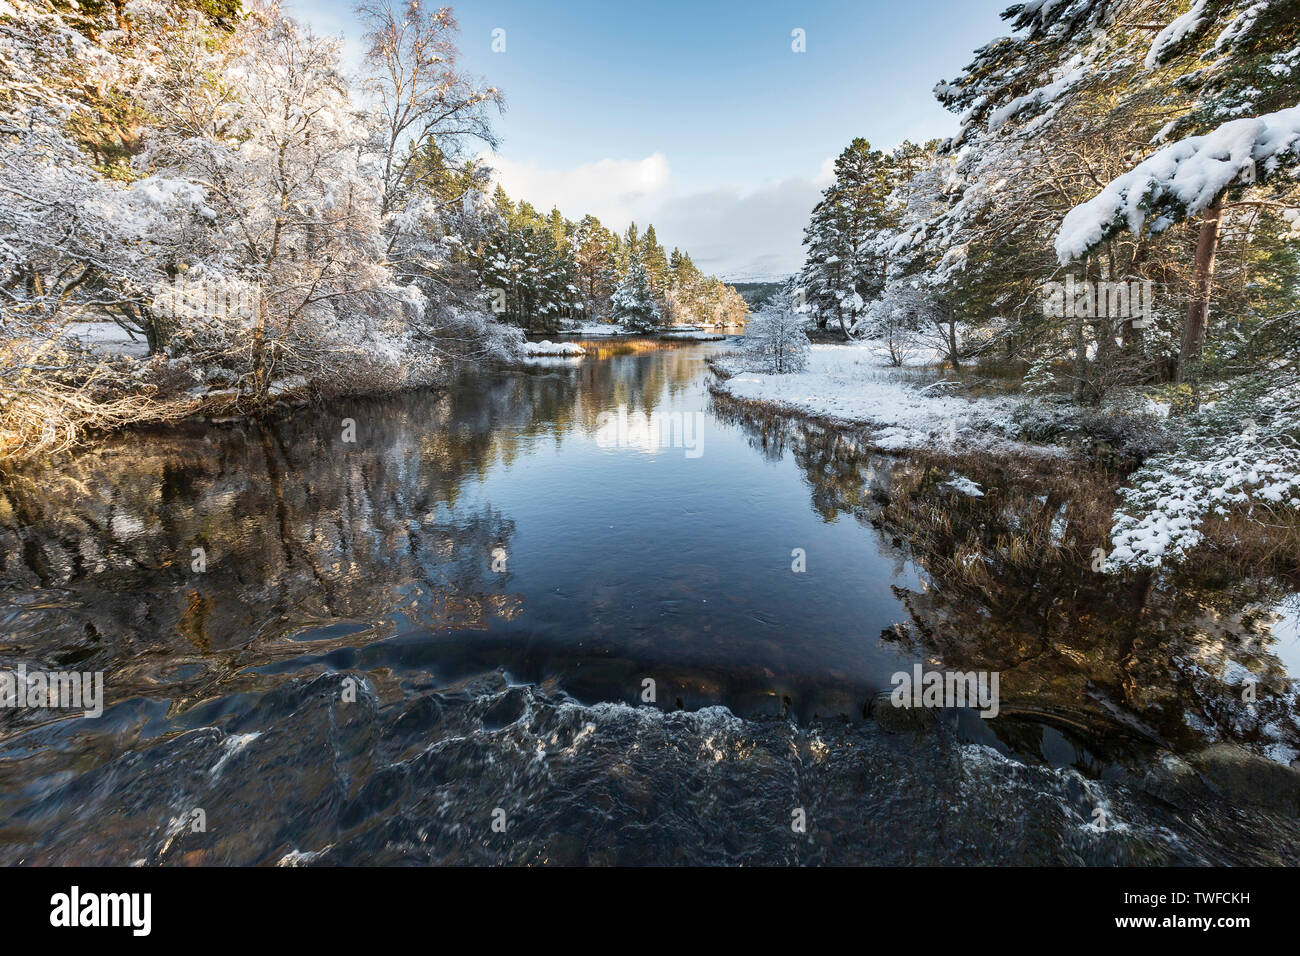 River Luineag flowing into Loch Morlich in the Cairngorms National Park of Scotland. - Stock Image